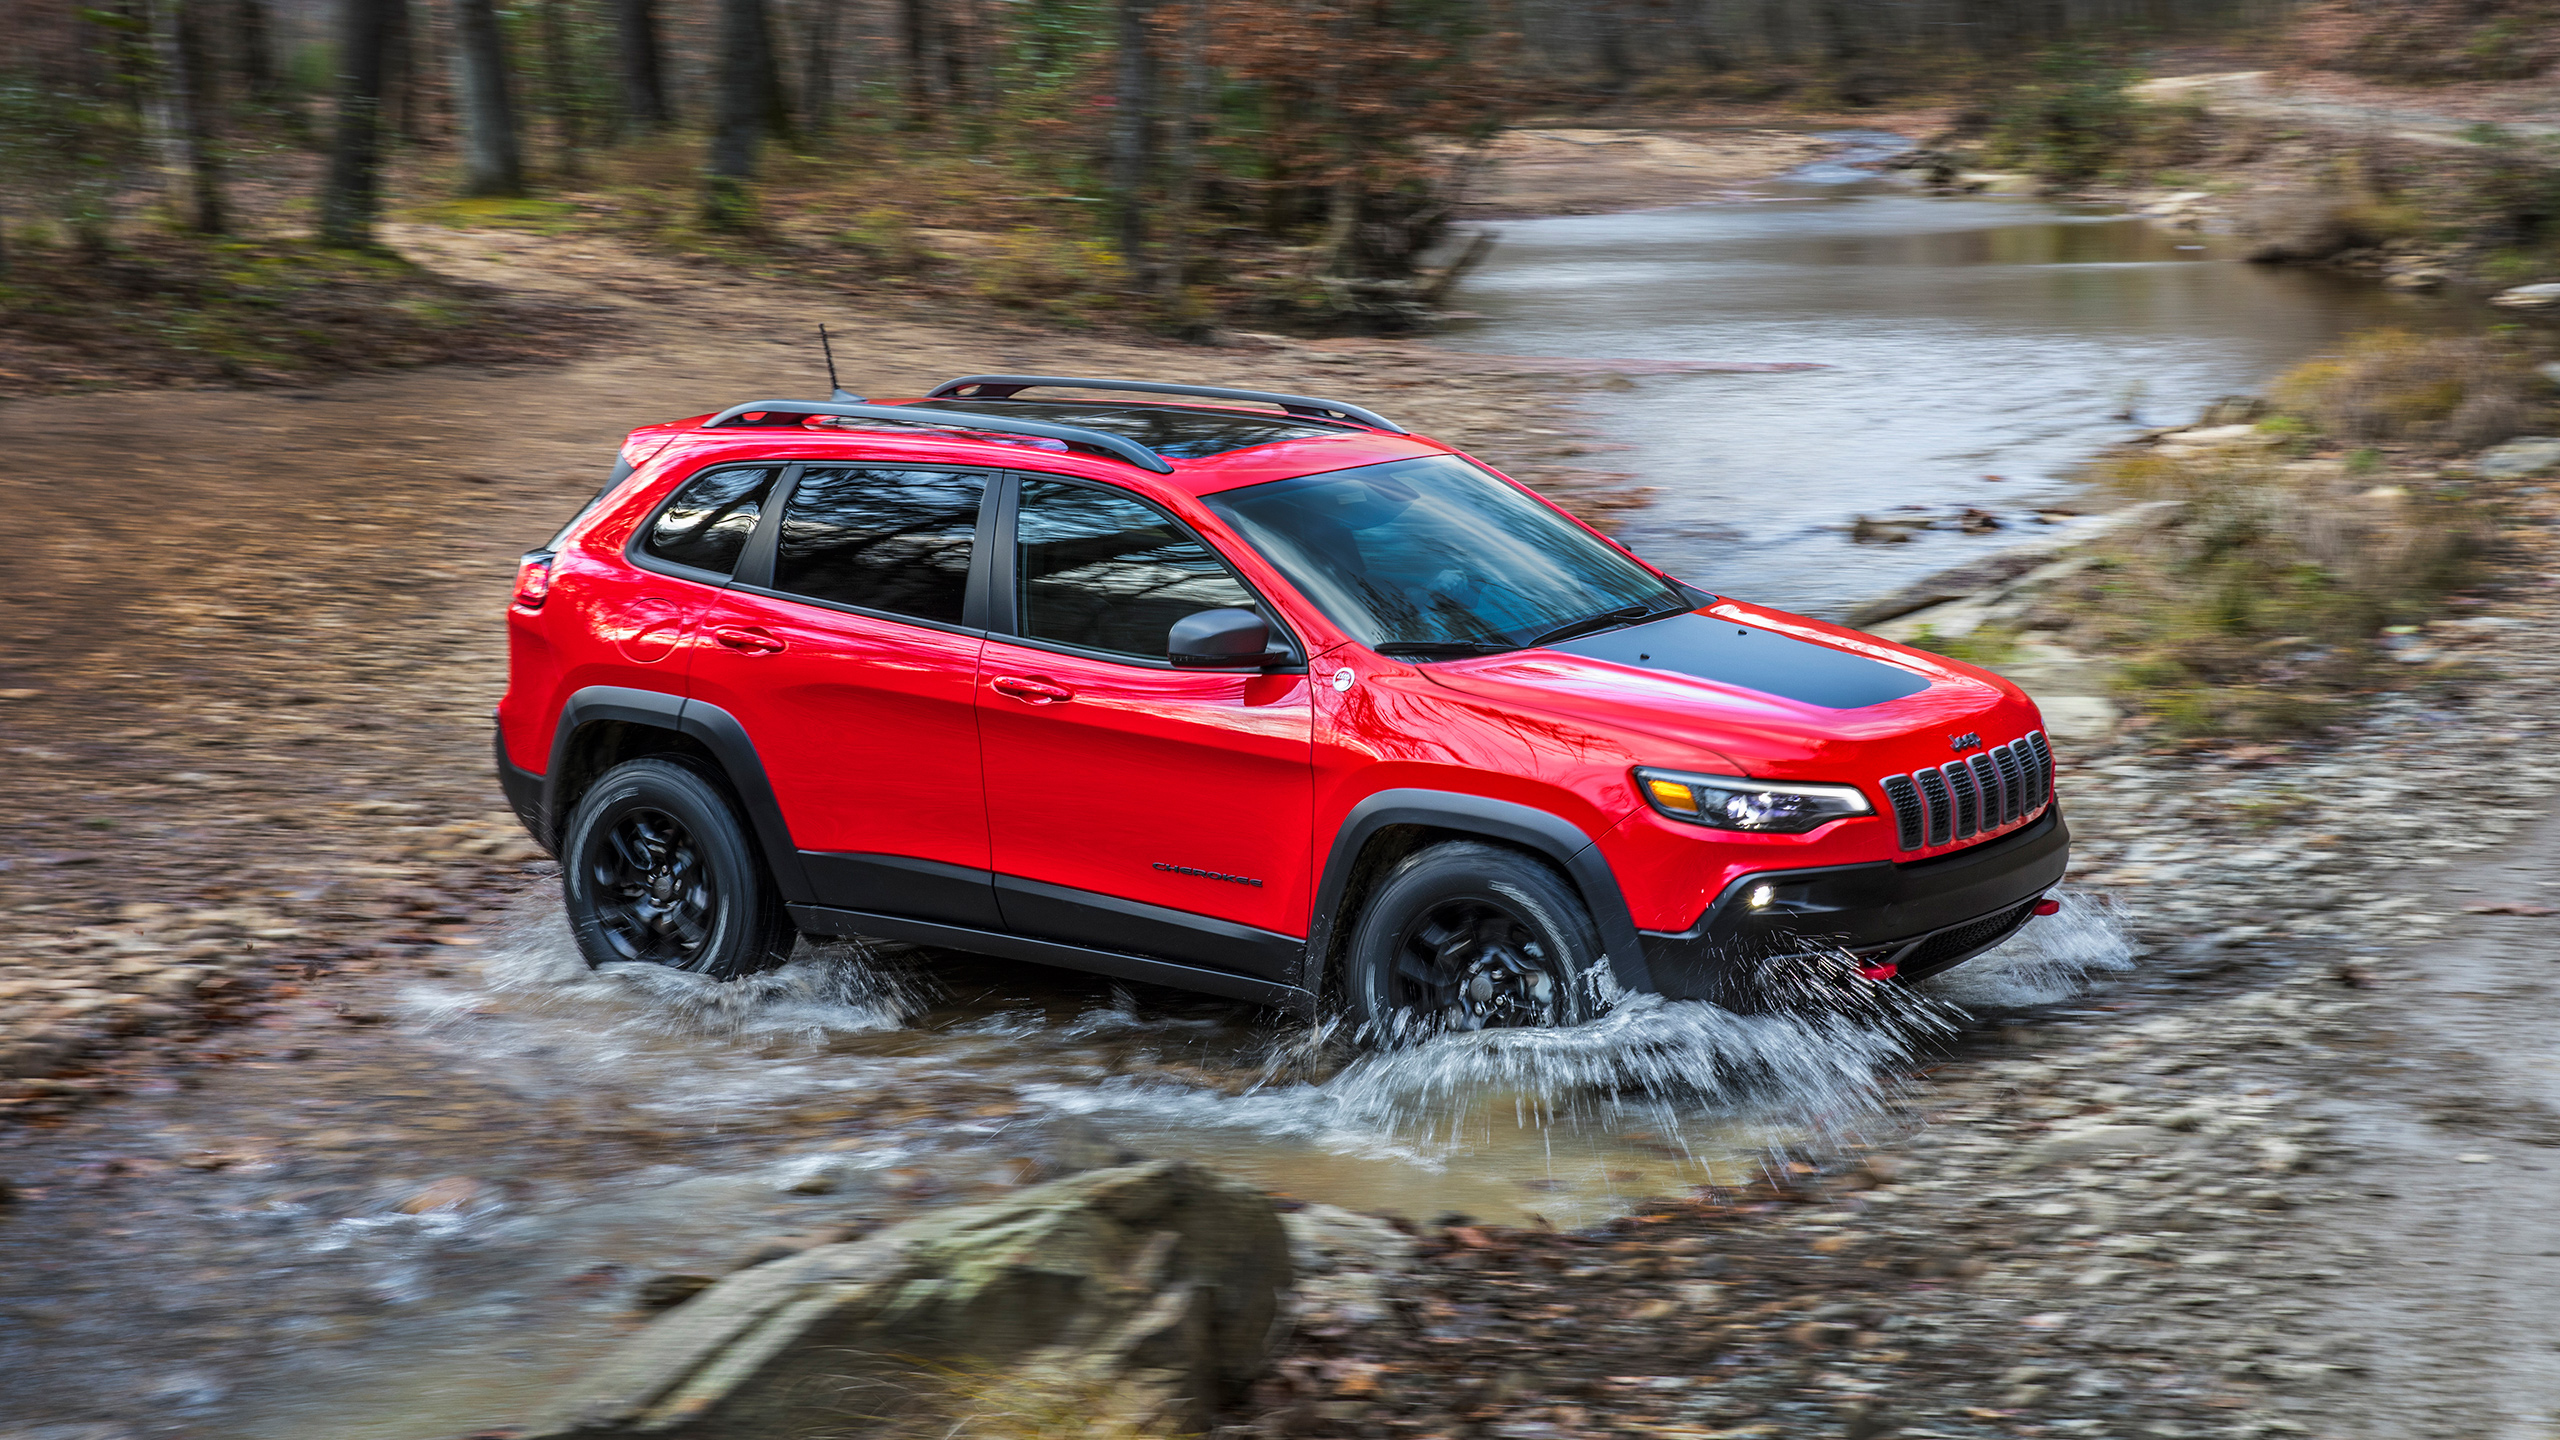 2019 Jeep Cherokee Trailhawk 2 Wallpaper HD Car Wallpapers ID 2560x1440